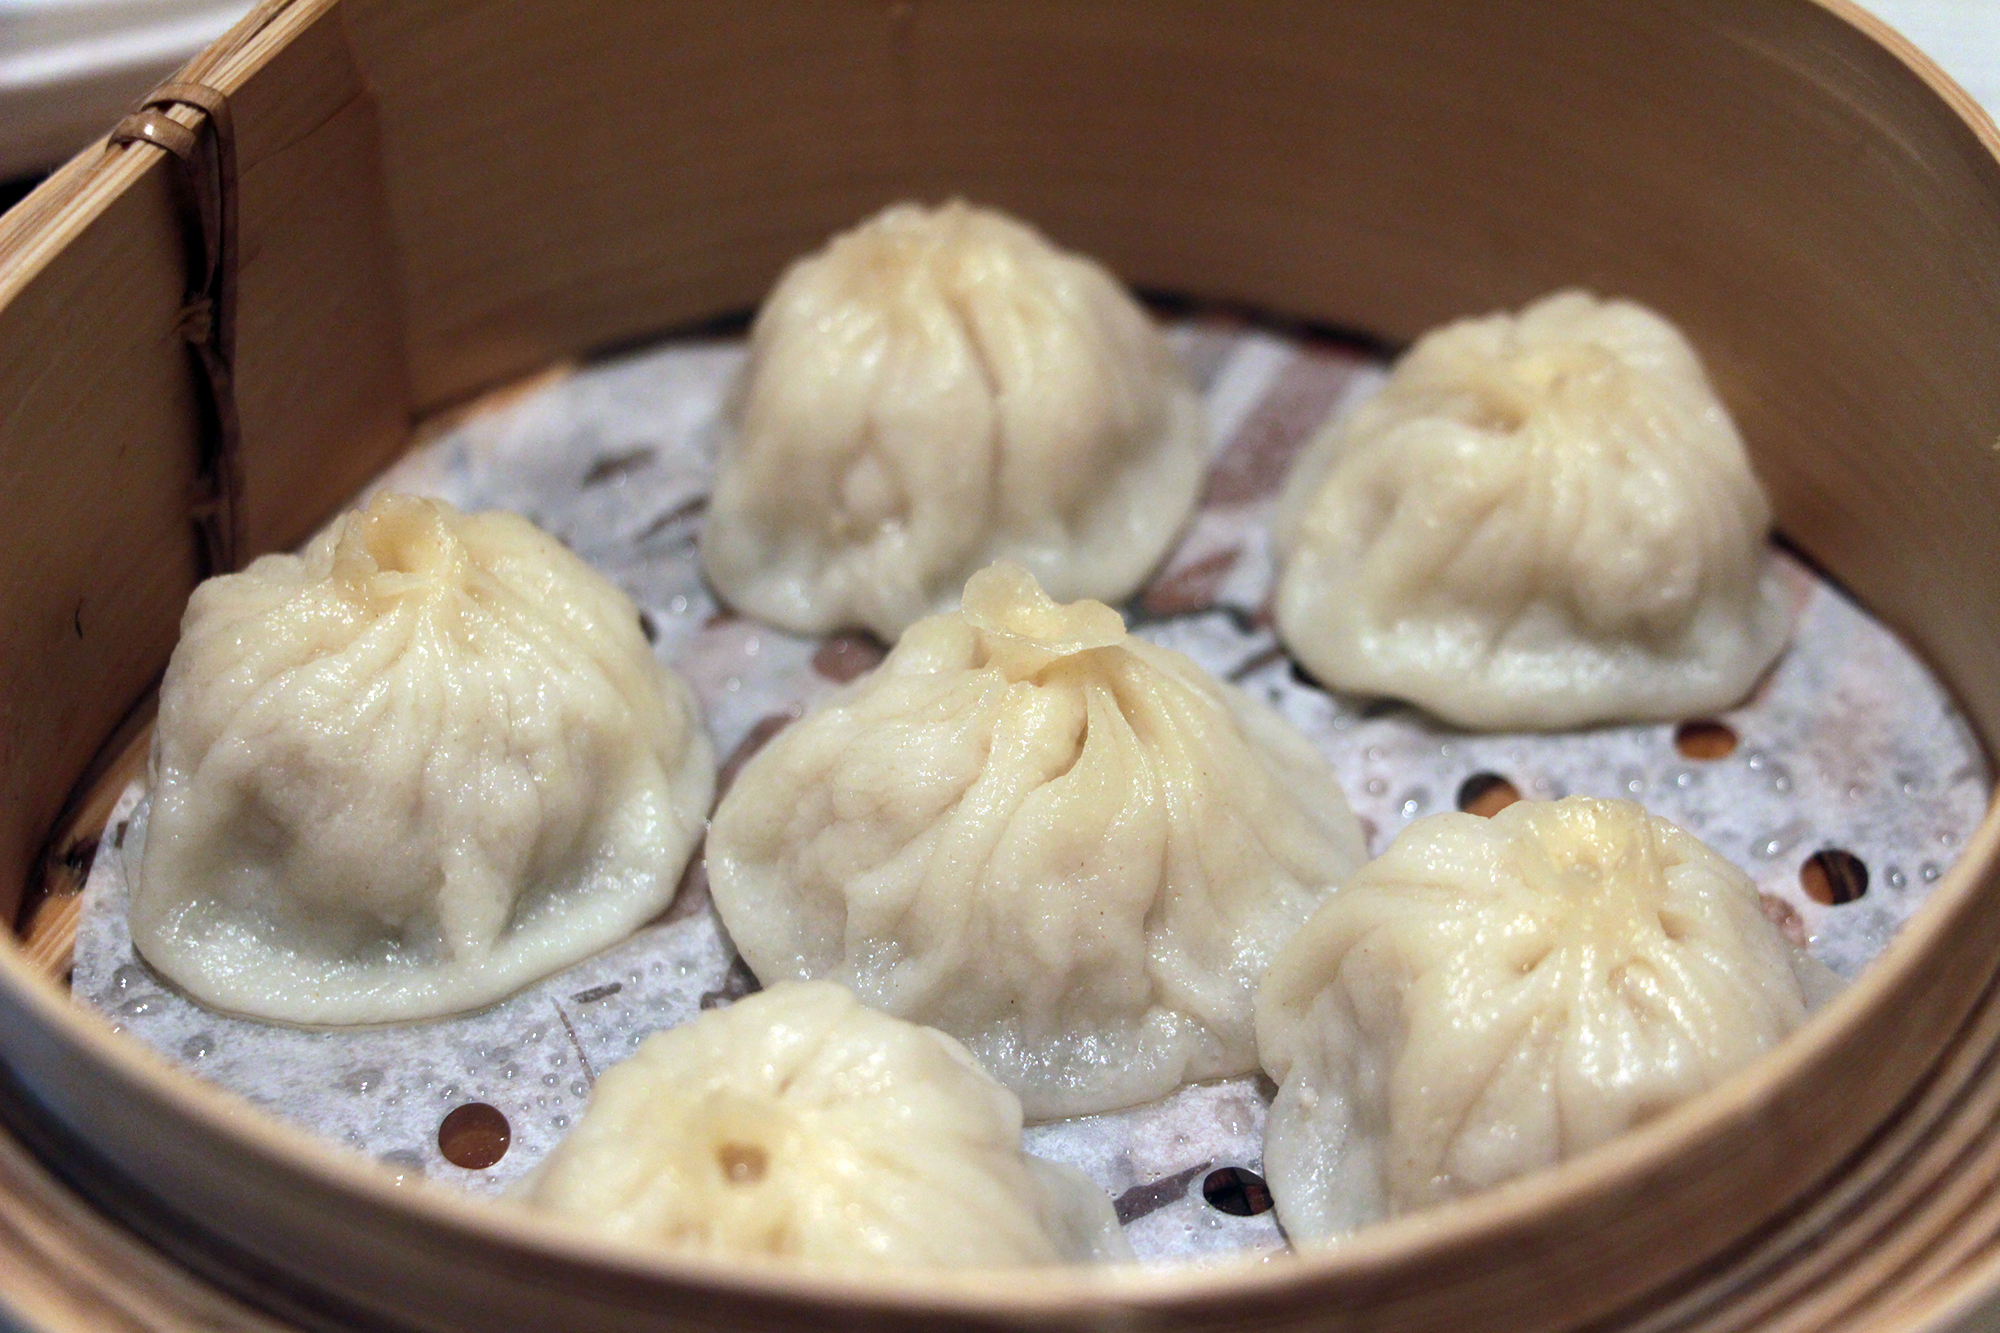 Xiao Long Bao 'XLB' filled with Rich Consumme at China Live